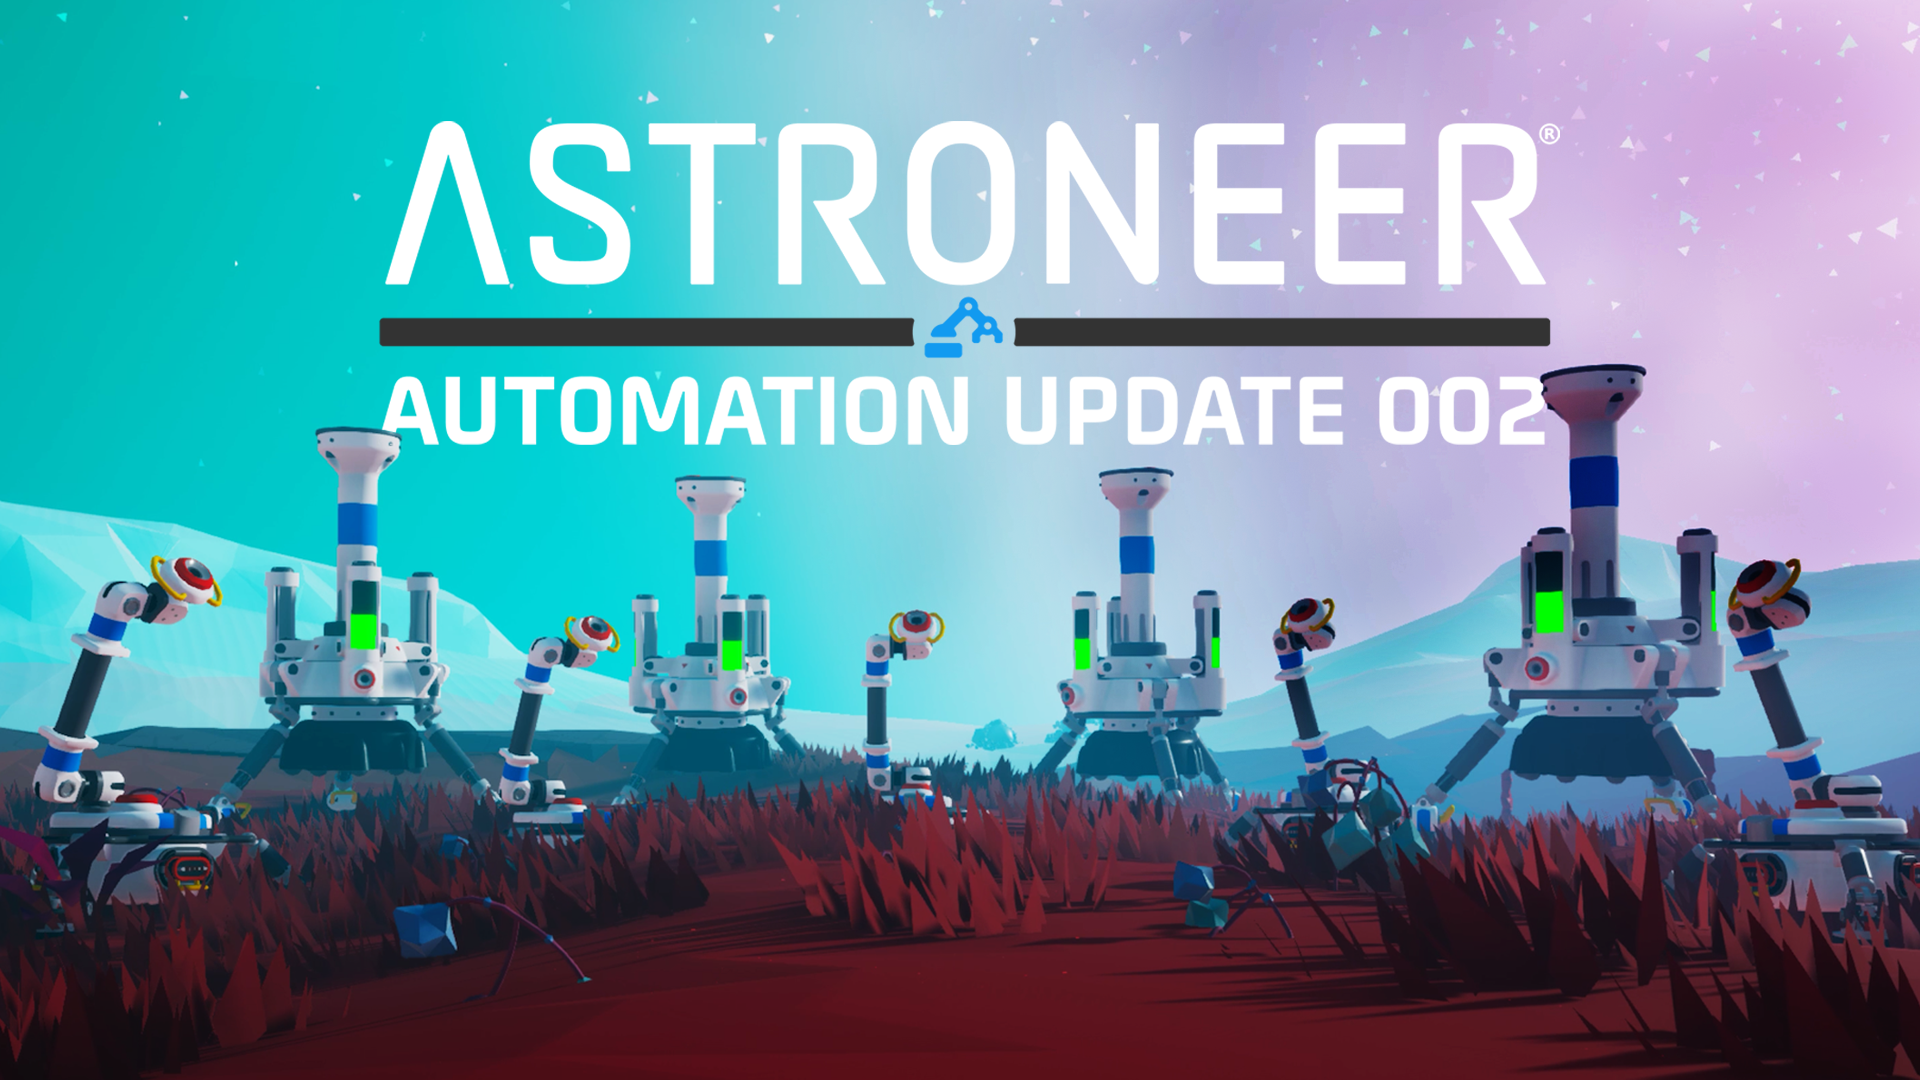 Automation Update 002 is Live!